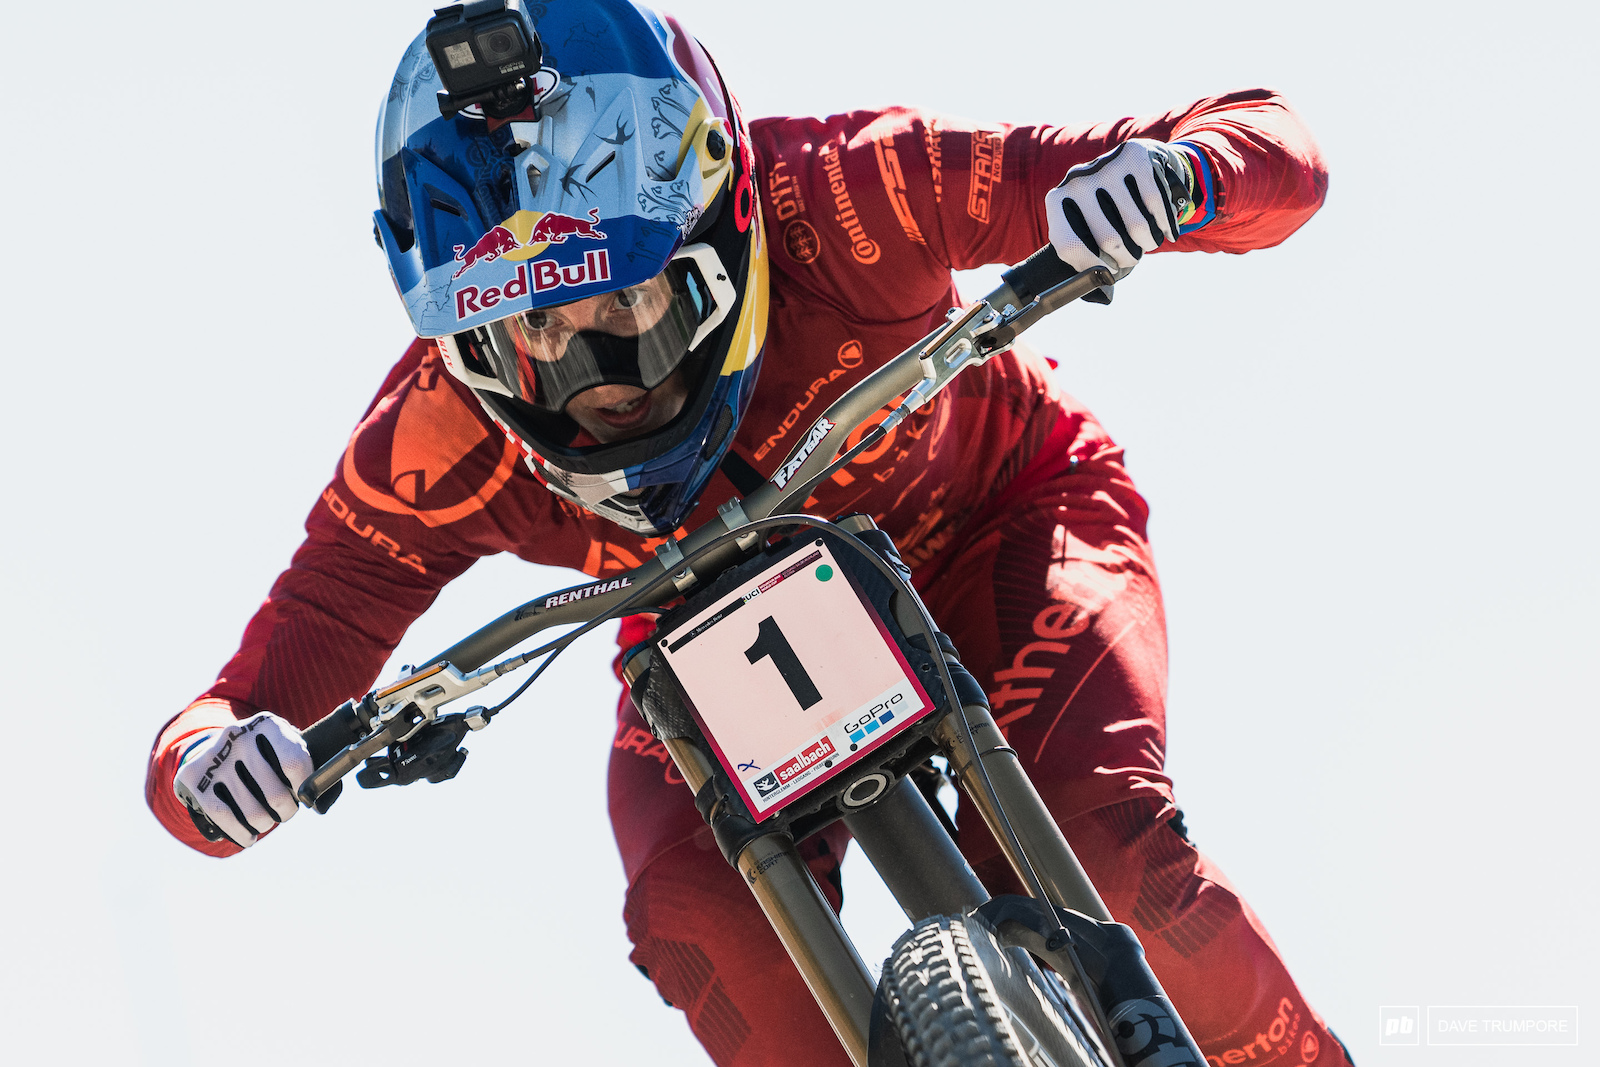 Rachel Atherton at full gas and looking way ahead as she speeds down the motorway section.